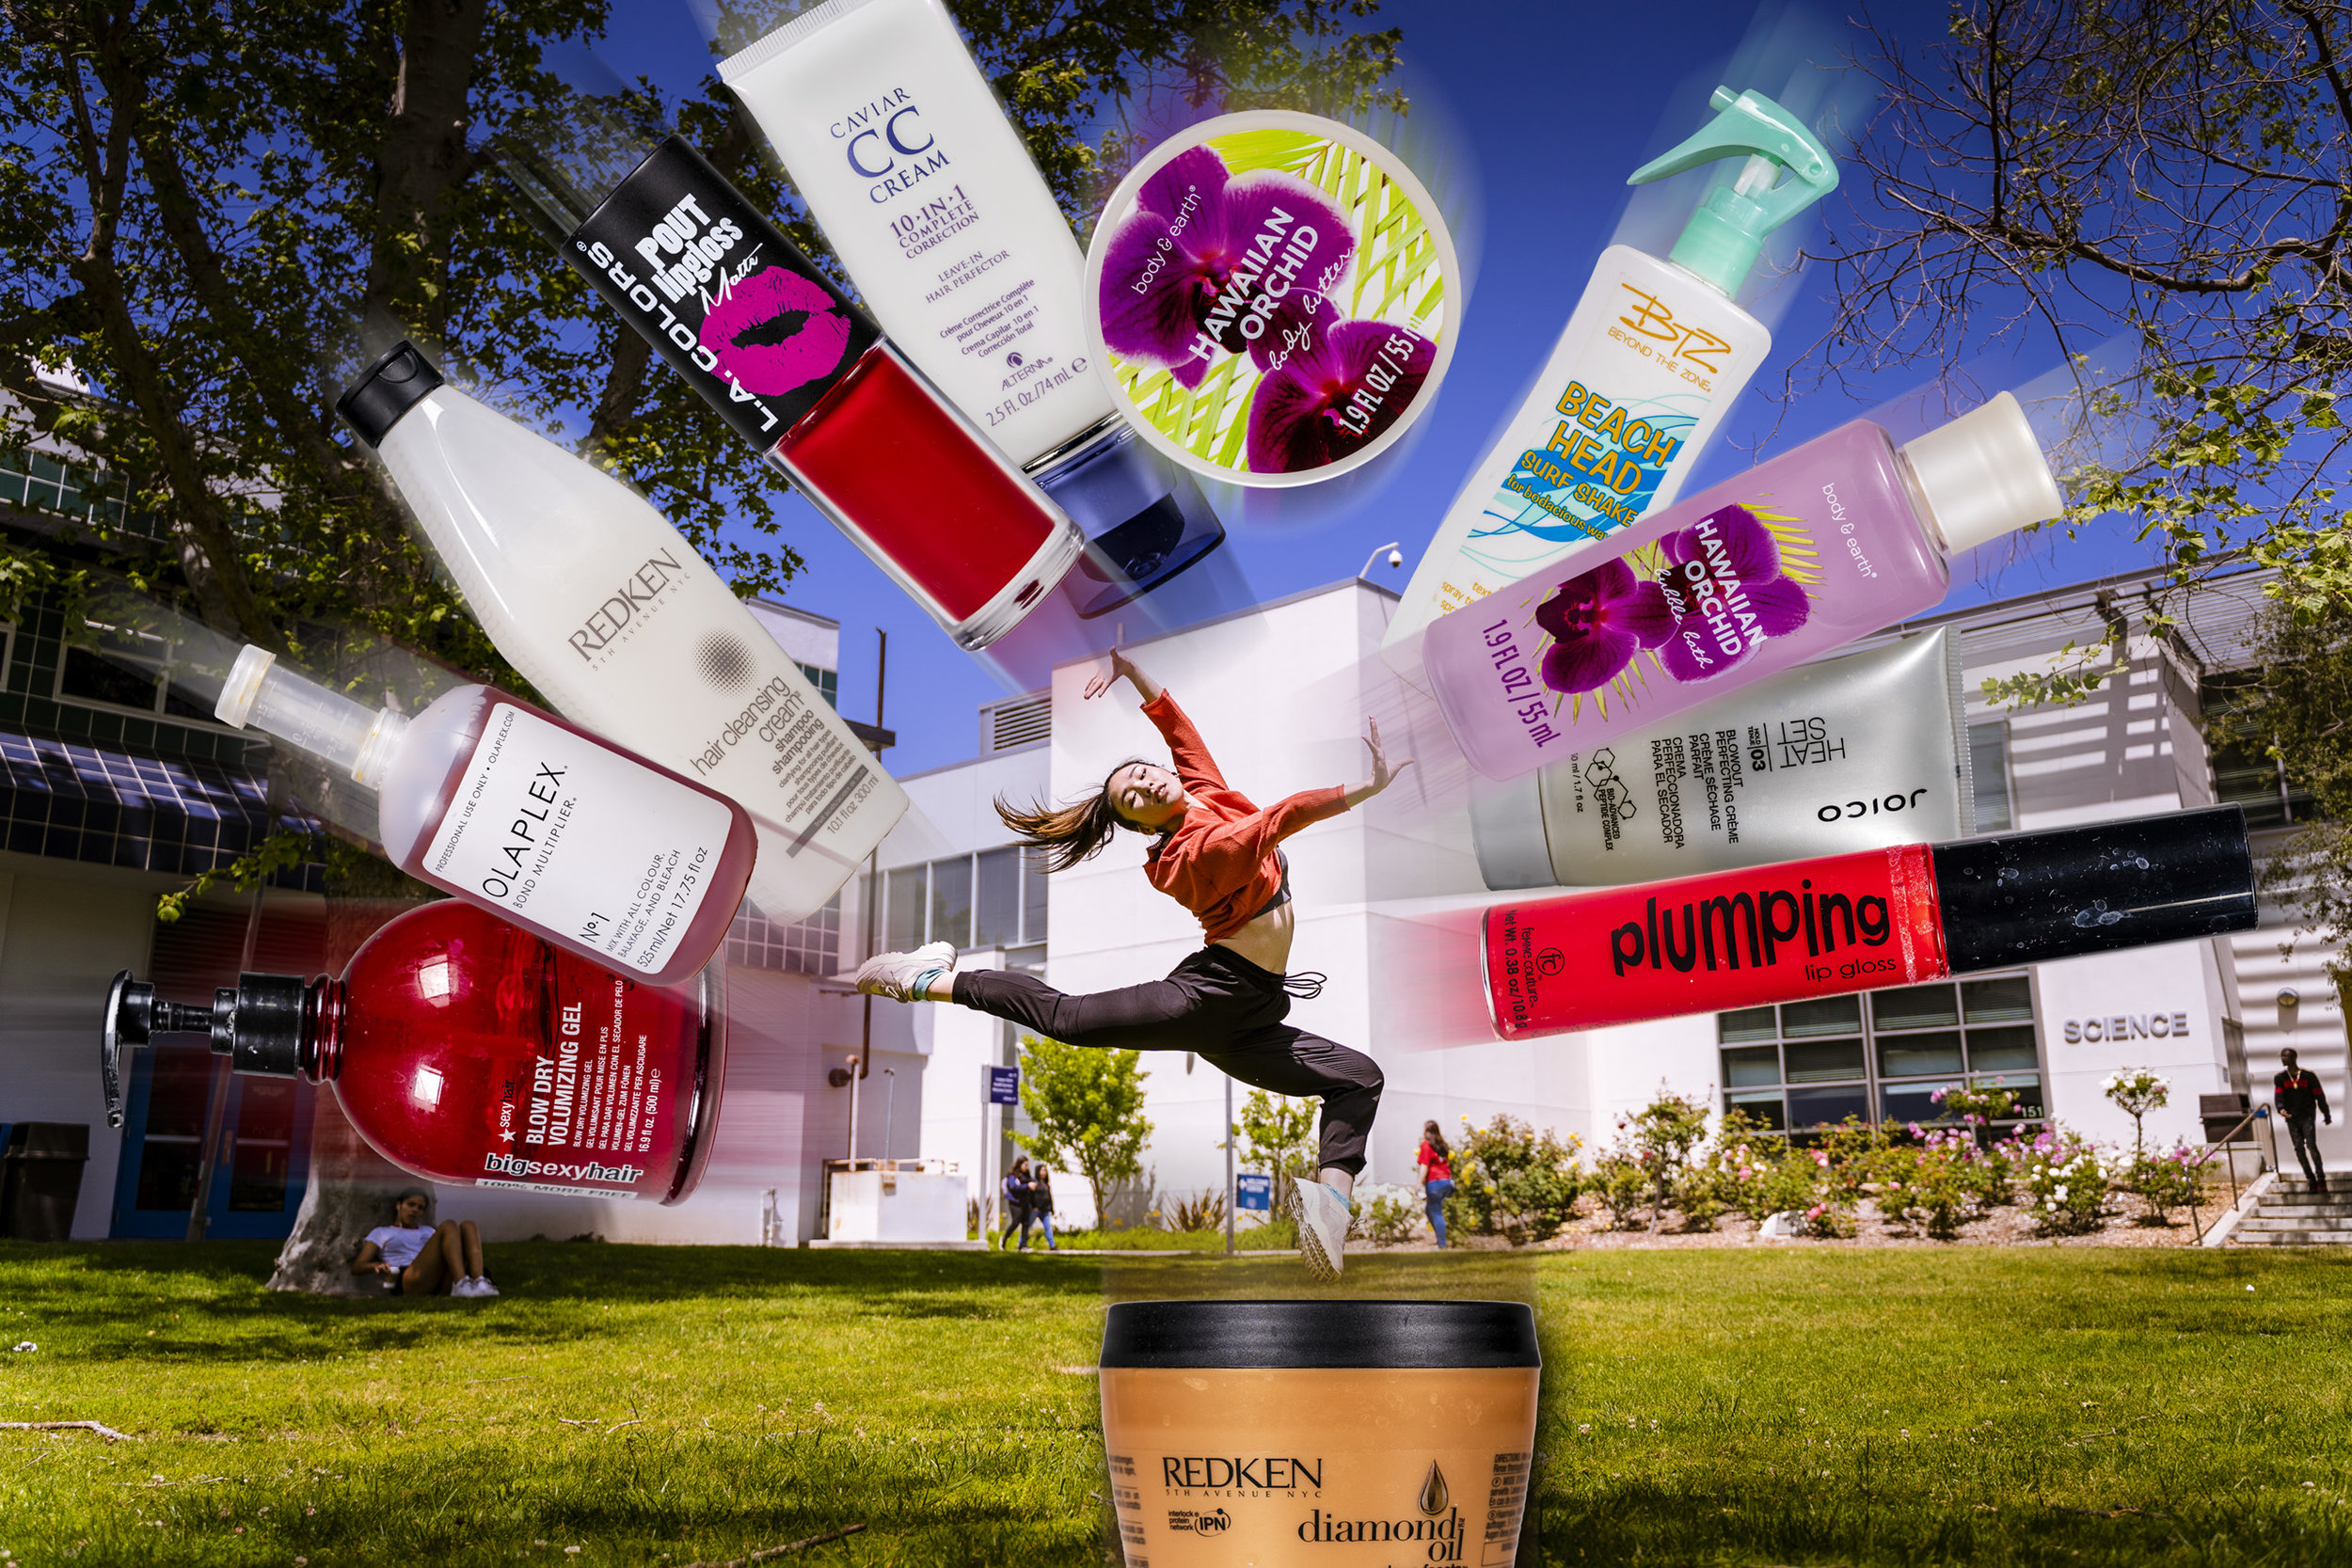 SMC Dance major Marii Kawabata attempts to shield herself from the onslaught of beauty industry plastic pollution. (Photo illustration/Glenn Zucman/The Corsair)